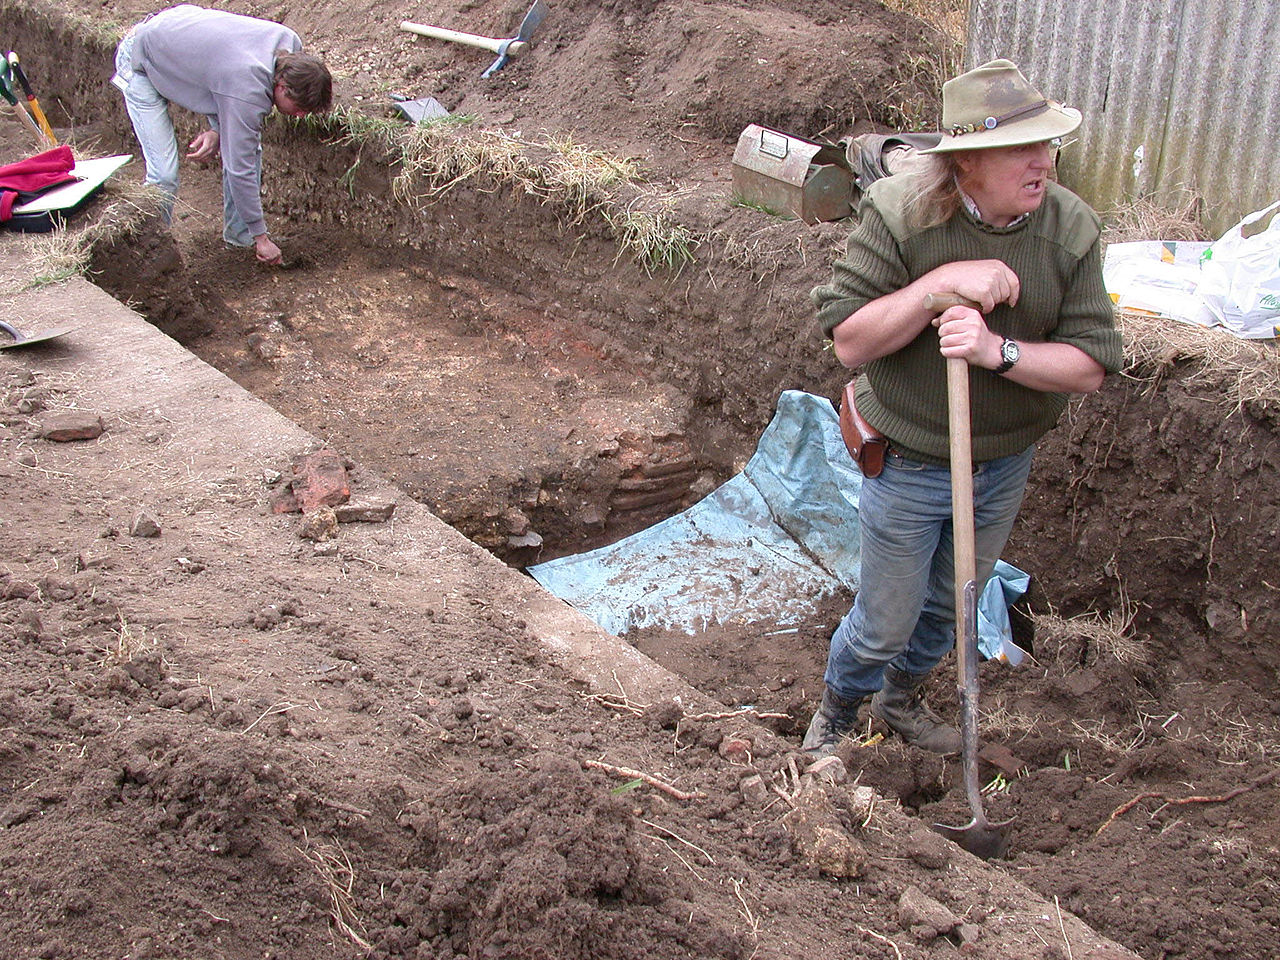 Phil Hard, 2013 Current Archaeologist 'Archaeologist of the Year' and stalwart of Time Team.